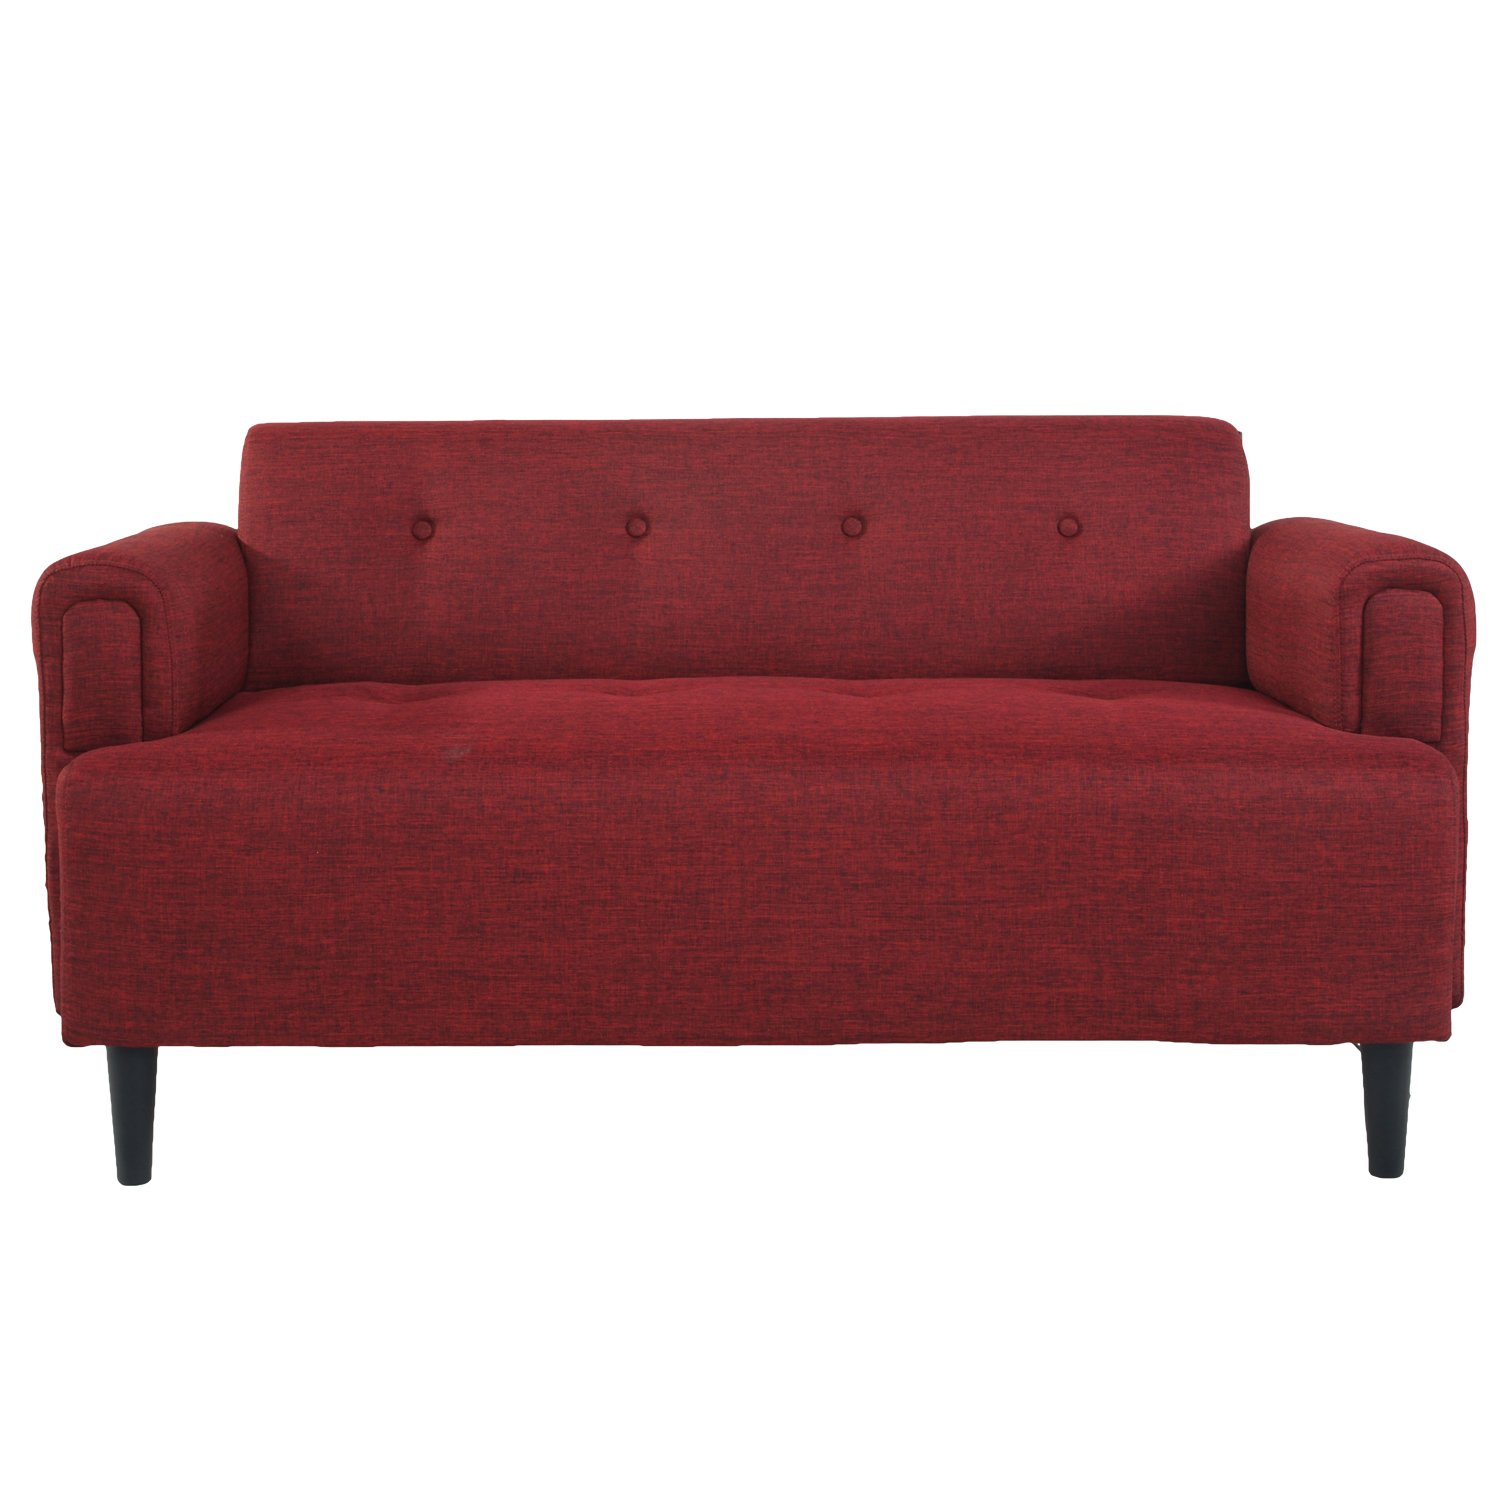 Joveco Extra Comfy Fabric Designed Sofa -two seats